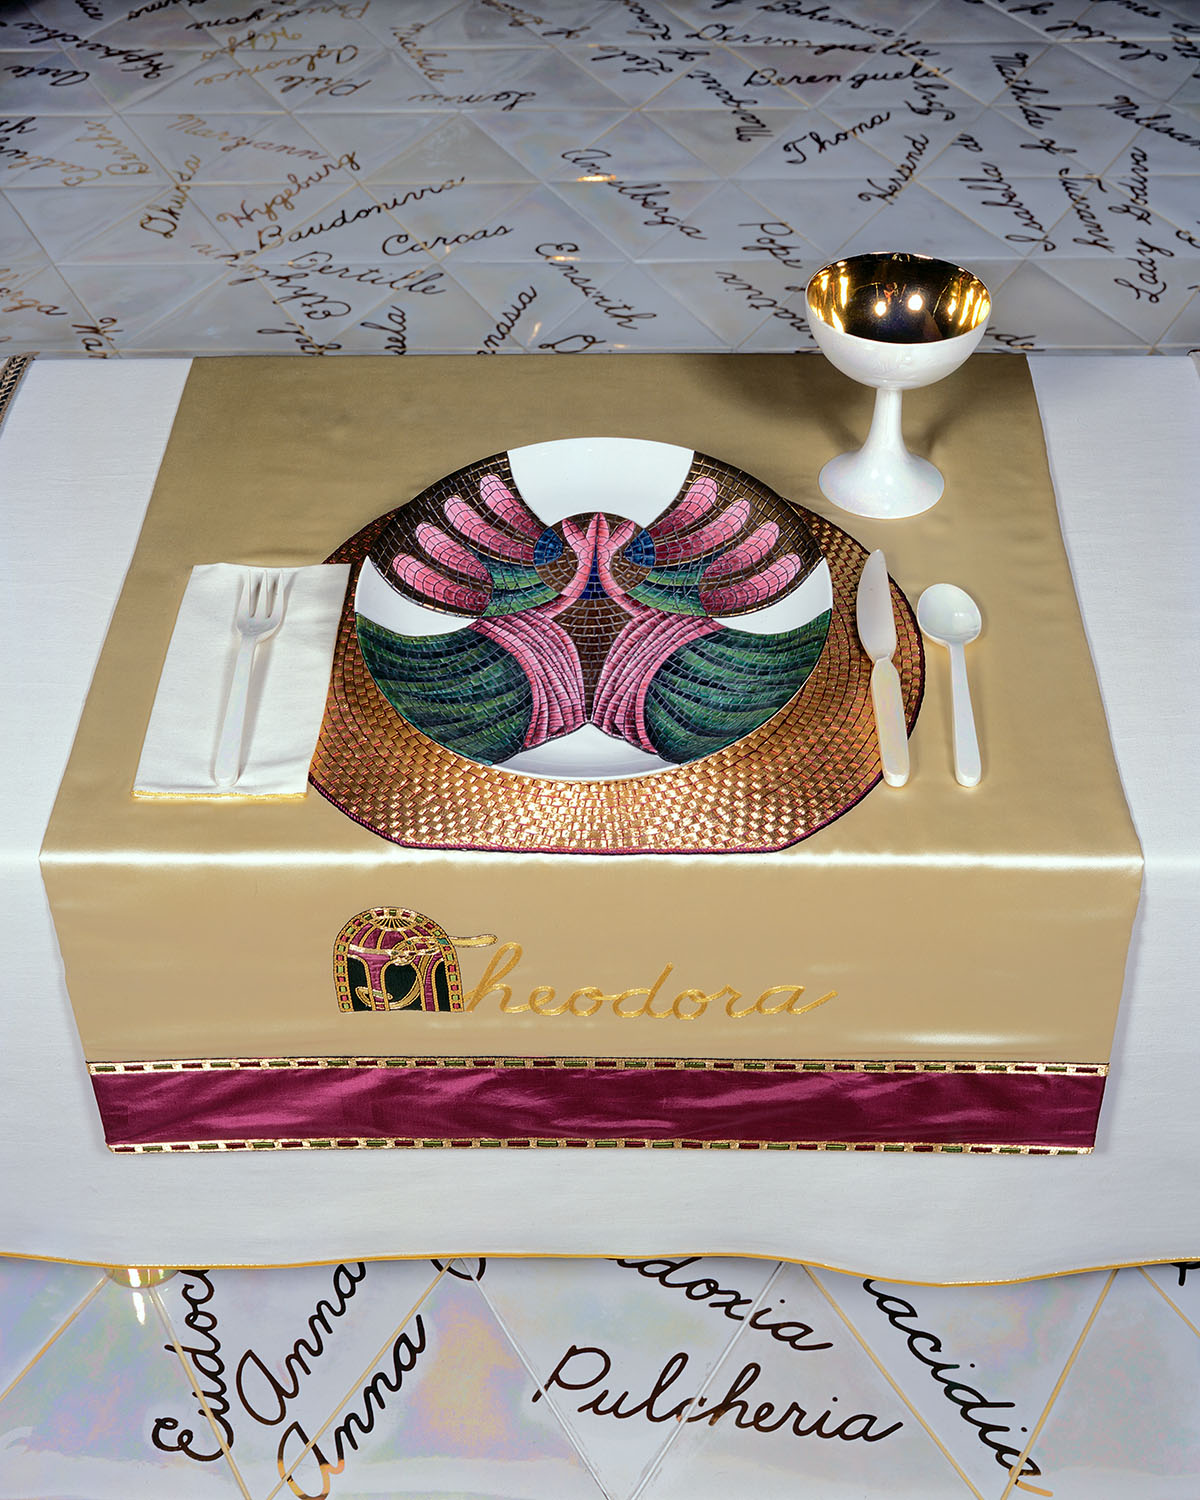 from <i>The Dinner Party</i>, 1979, mixed media. Collection of the Brooklyn Museum, Brooklyn, NY. Copyright Judy Chicago.